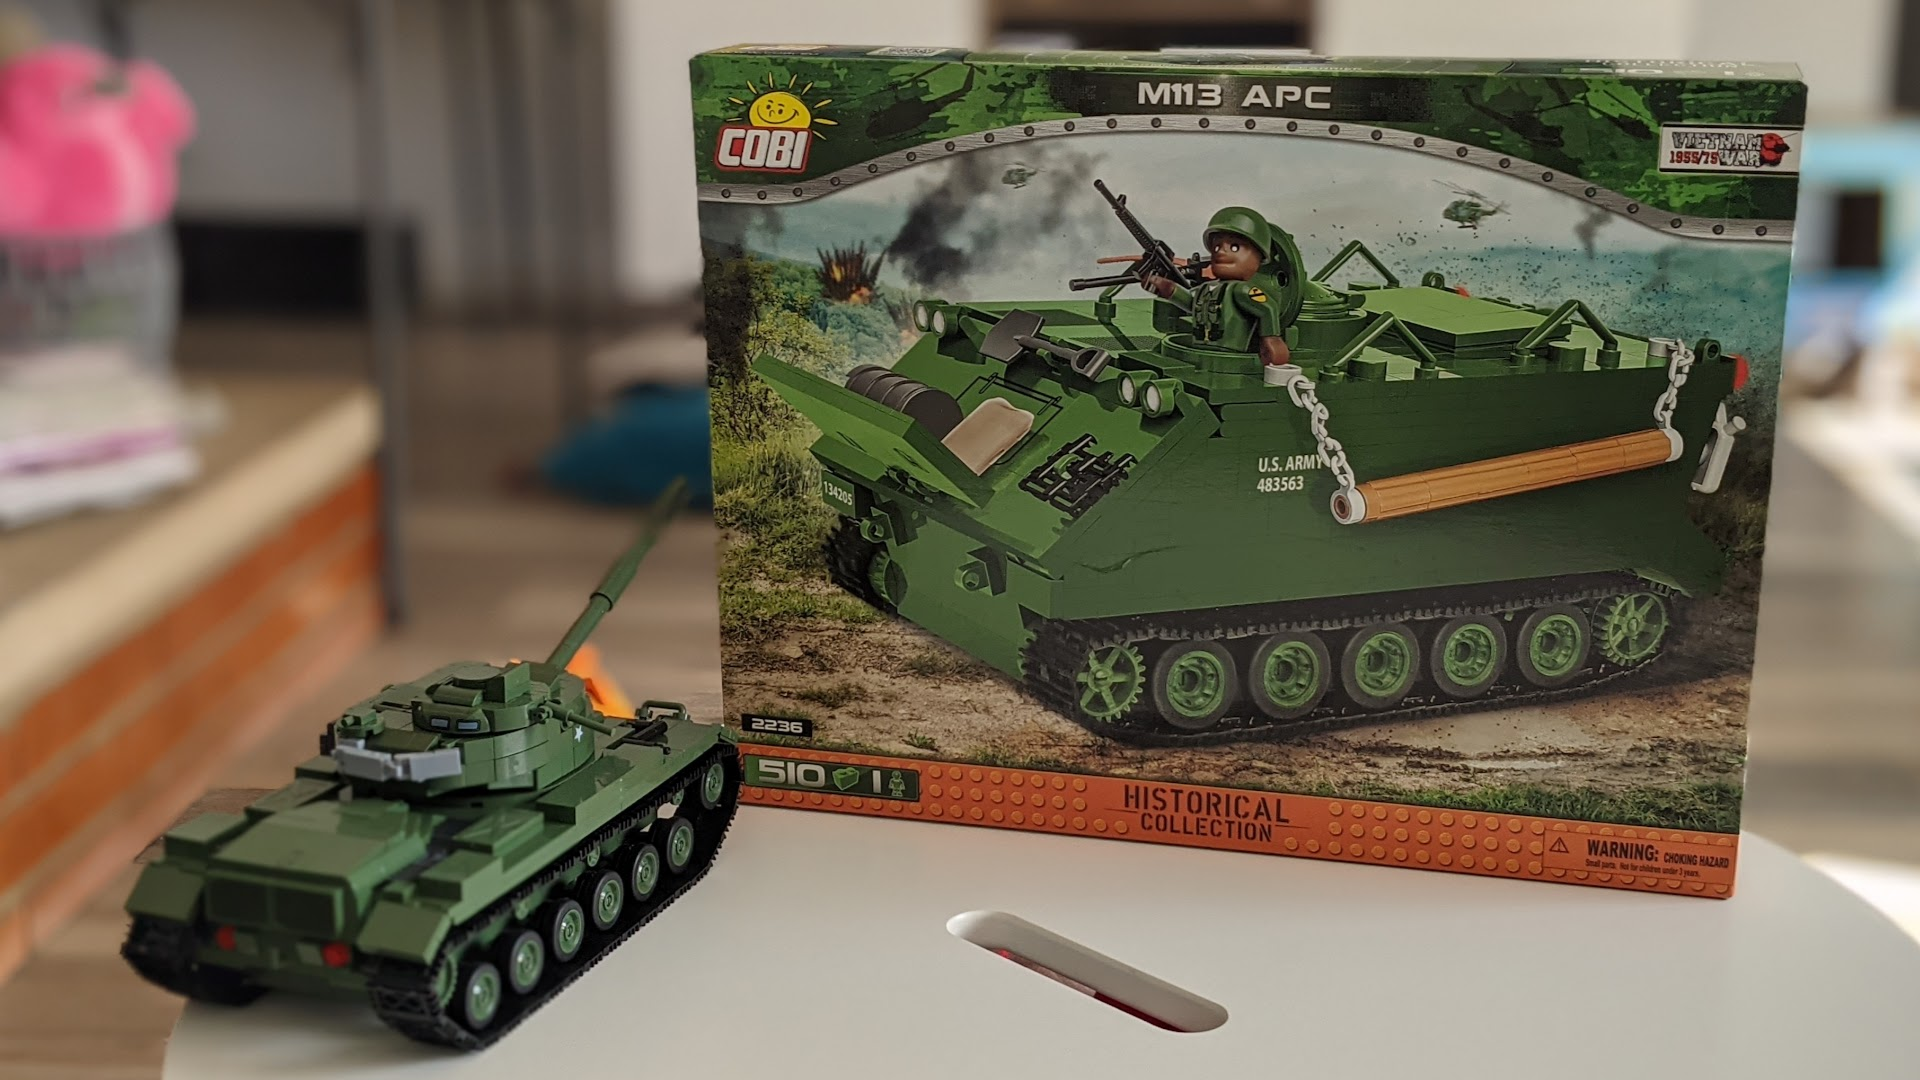 The COBI M113 Armored Personnel Carrier Box